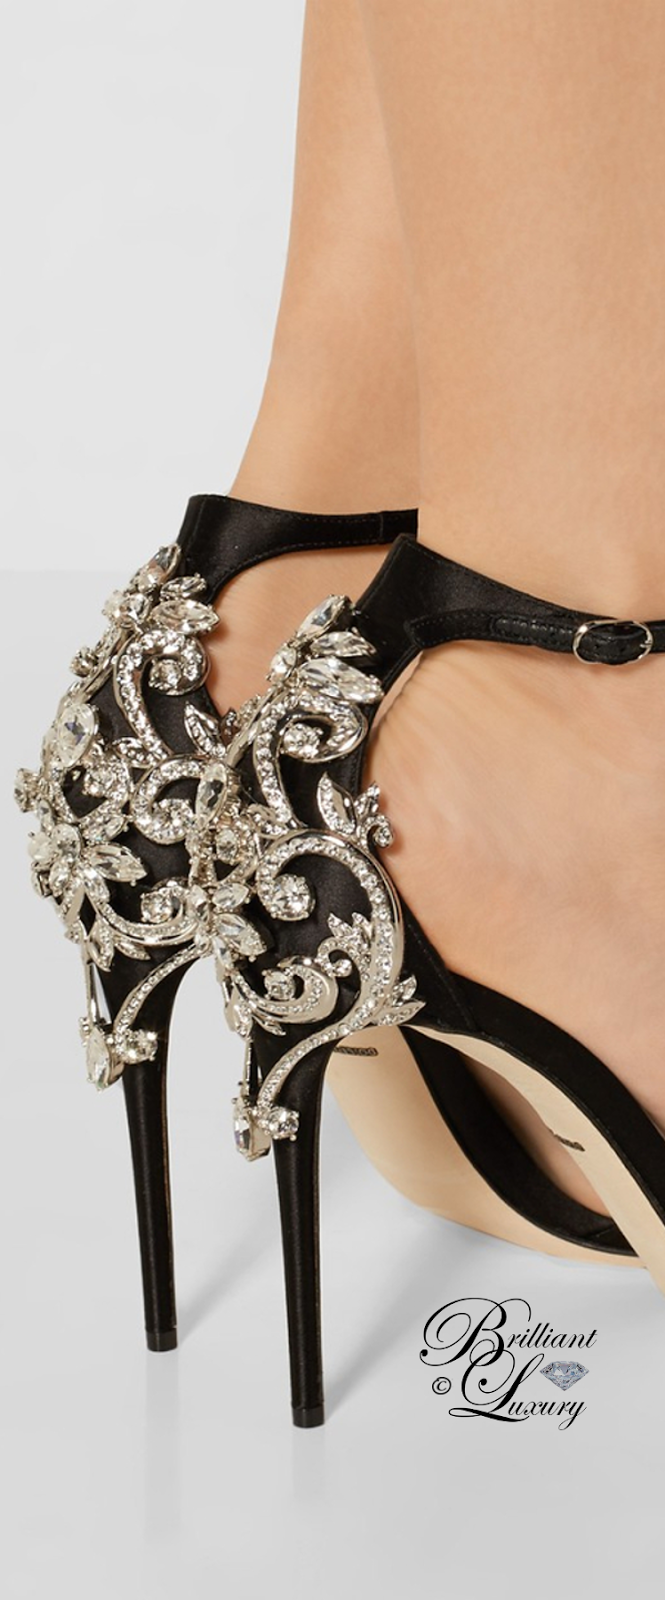 Brilliant Luxury ♦ Dolce & Gabbana Bejeweled Sandal